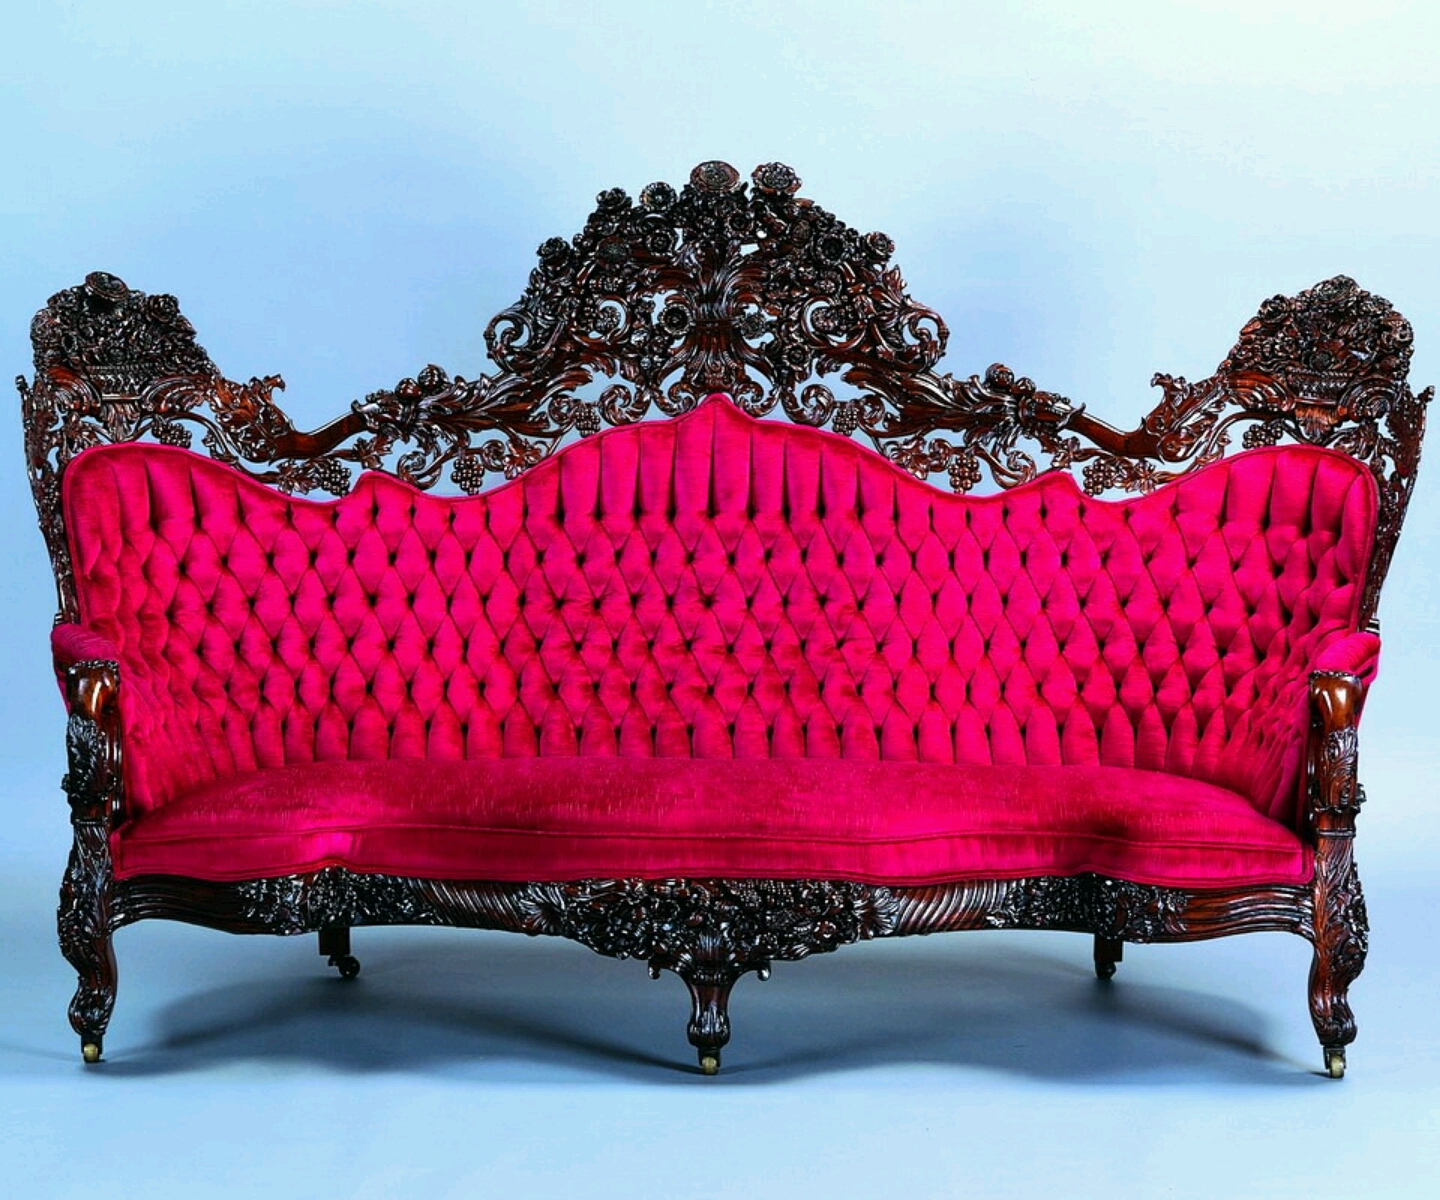 Antique Sofa Best Home Decorating Ideas Dhometrendsrowald Inside Antique Sofa Chairs (View 4 of 15)